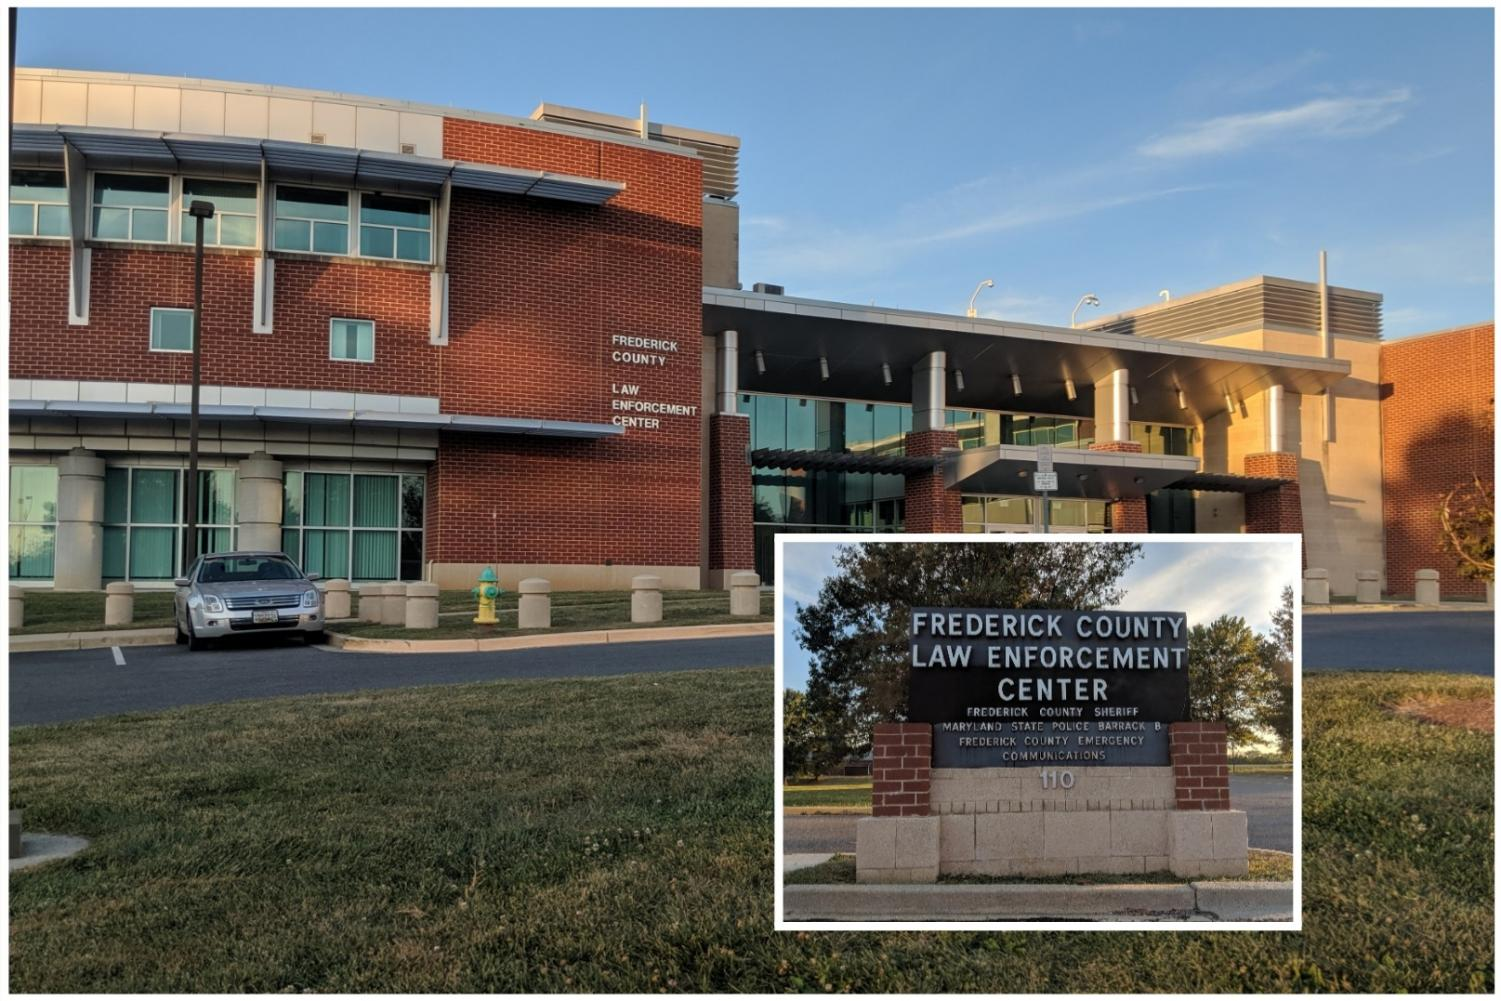 The Frederick County Law Enforcement Center, located at 110 Airport Drive.